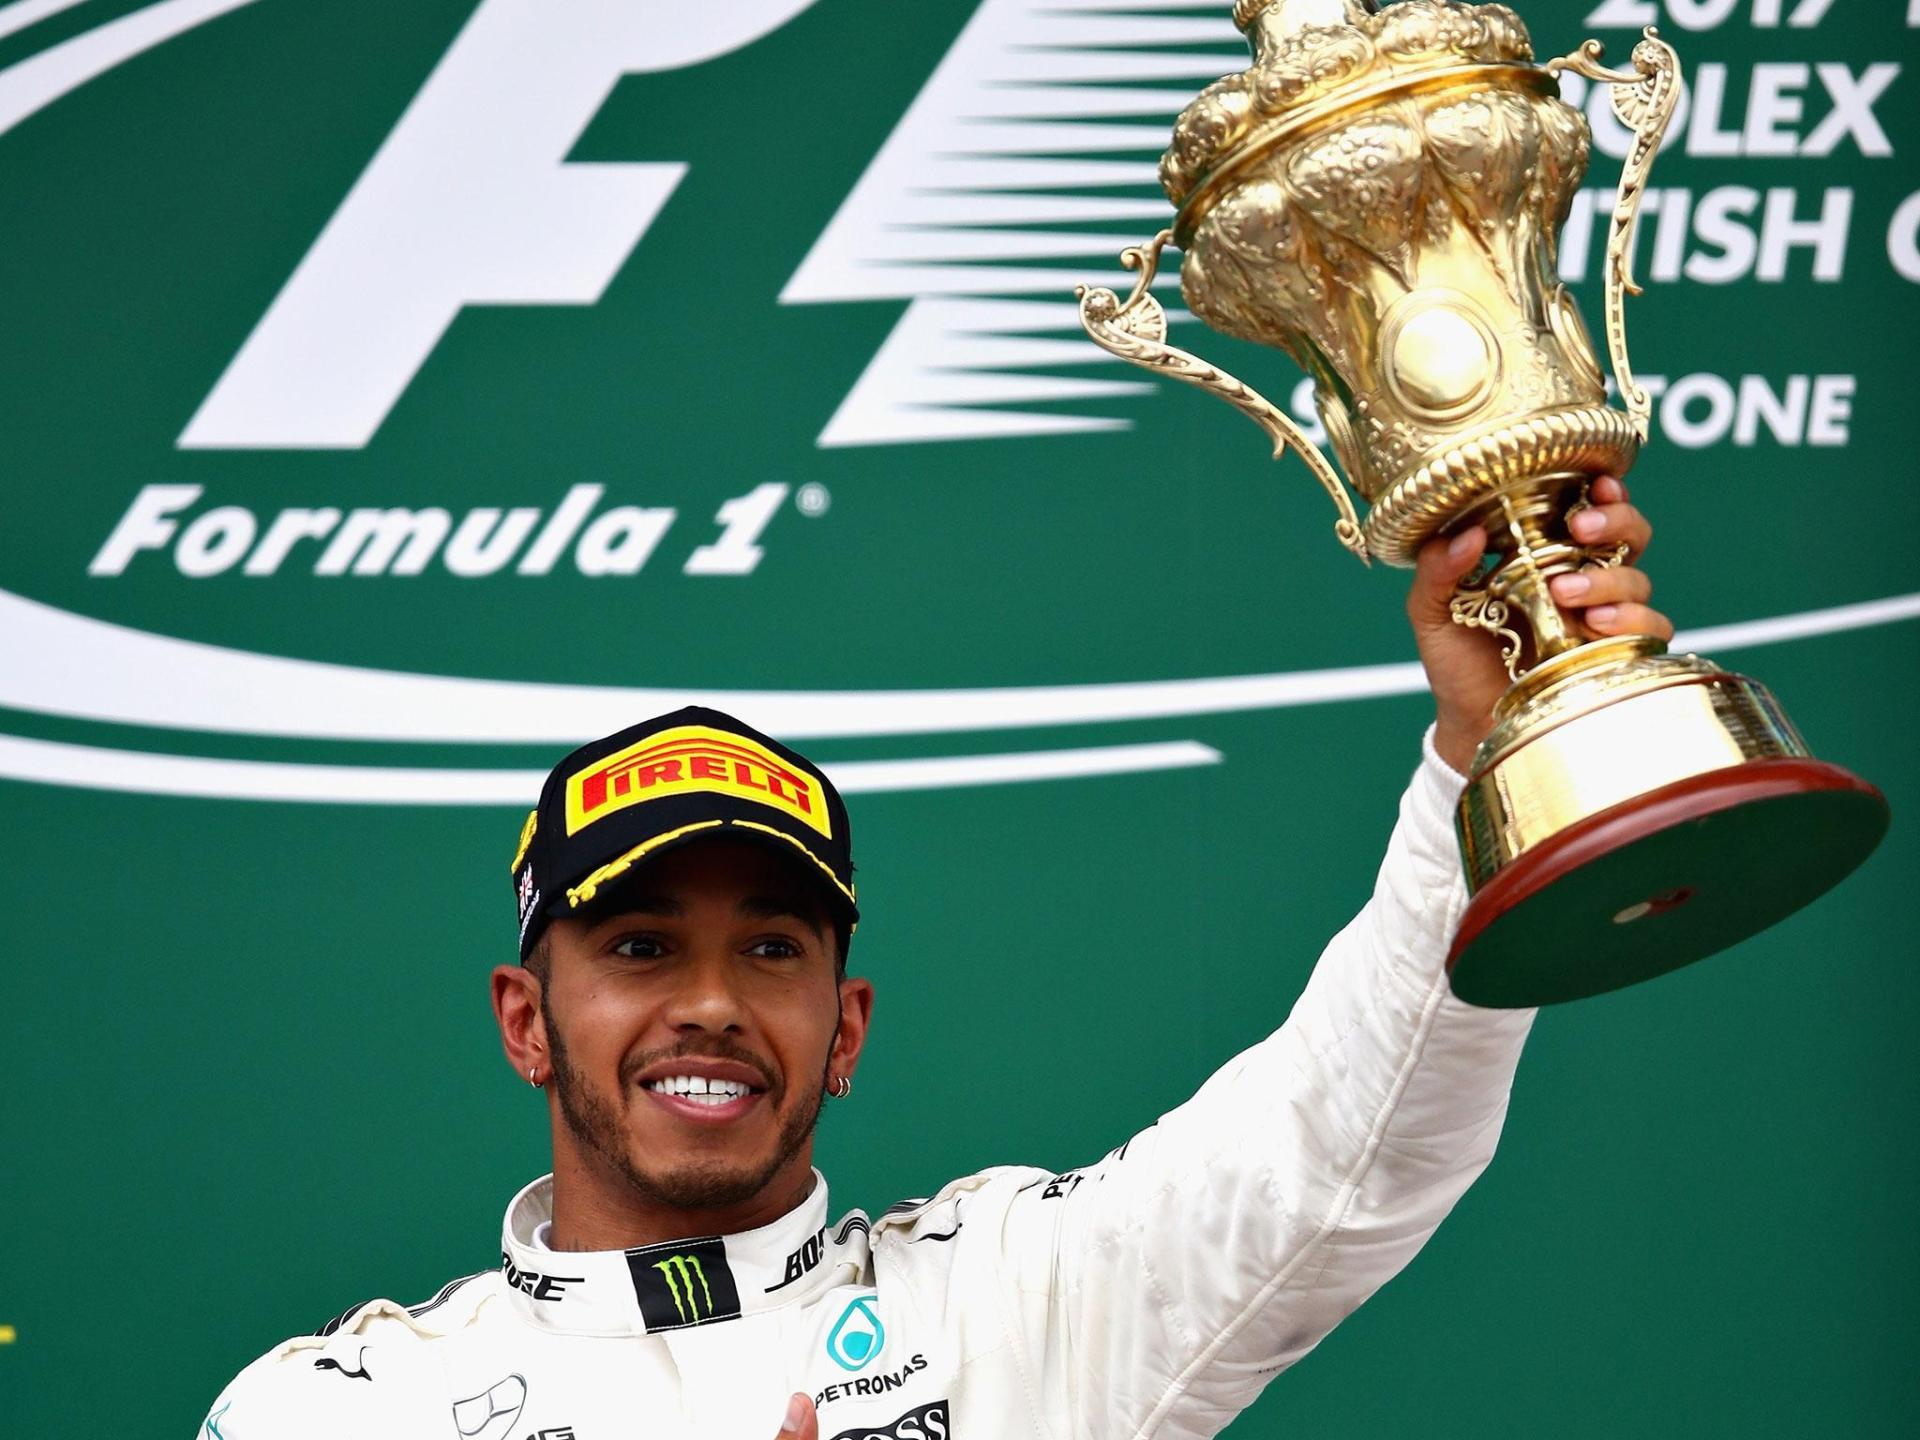 Lewis Hamilton wins record 7th British GP, nears all time great Michael Schumacher's Records - THE SPORTS ROOM